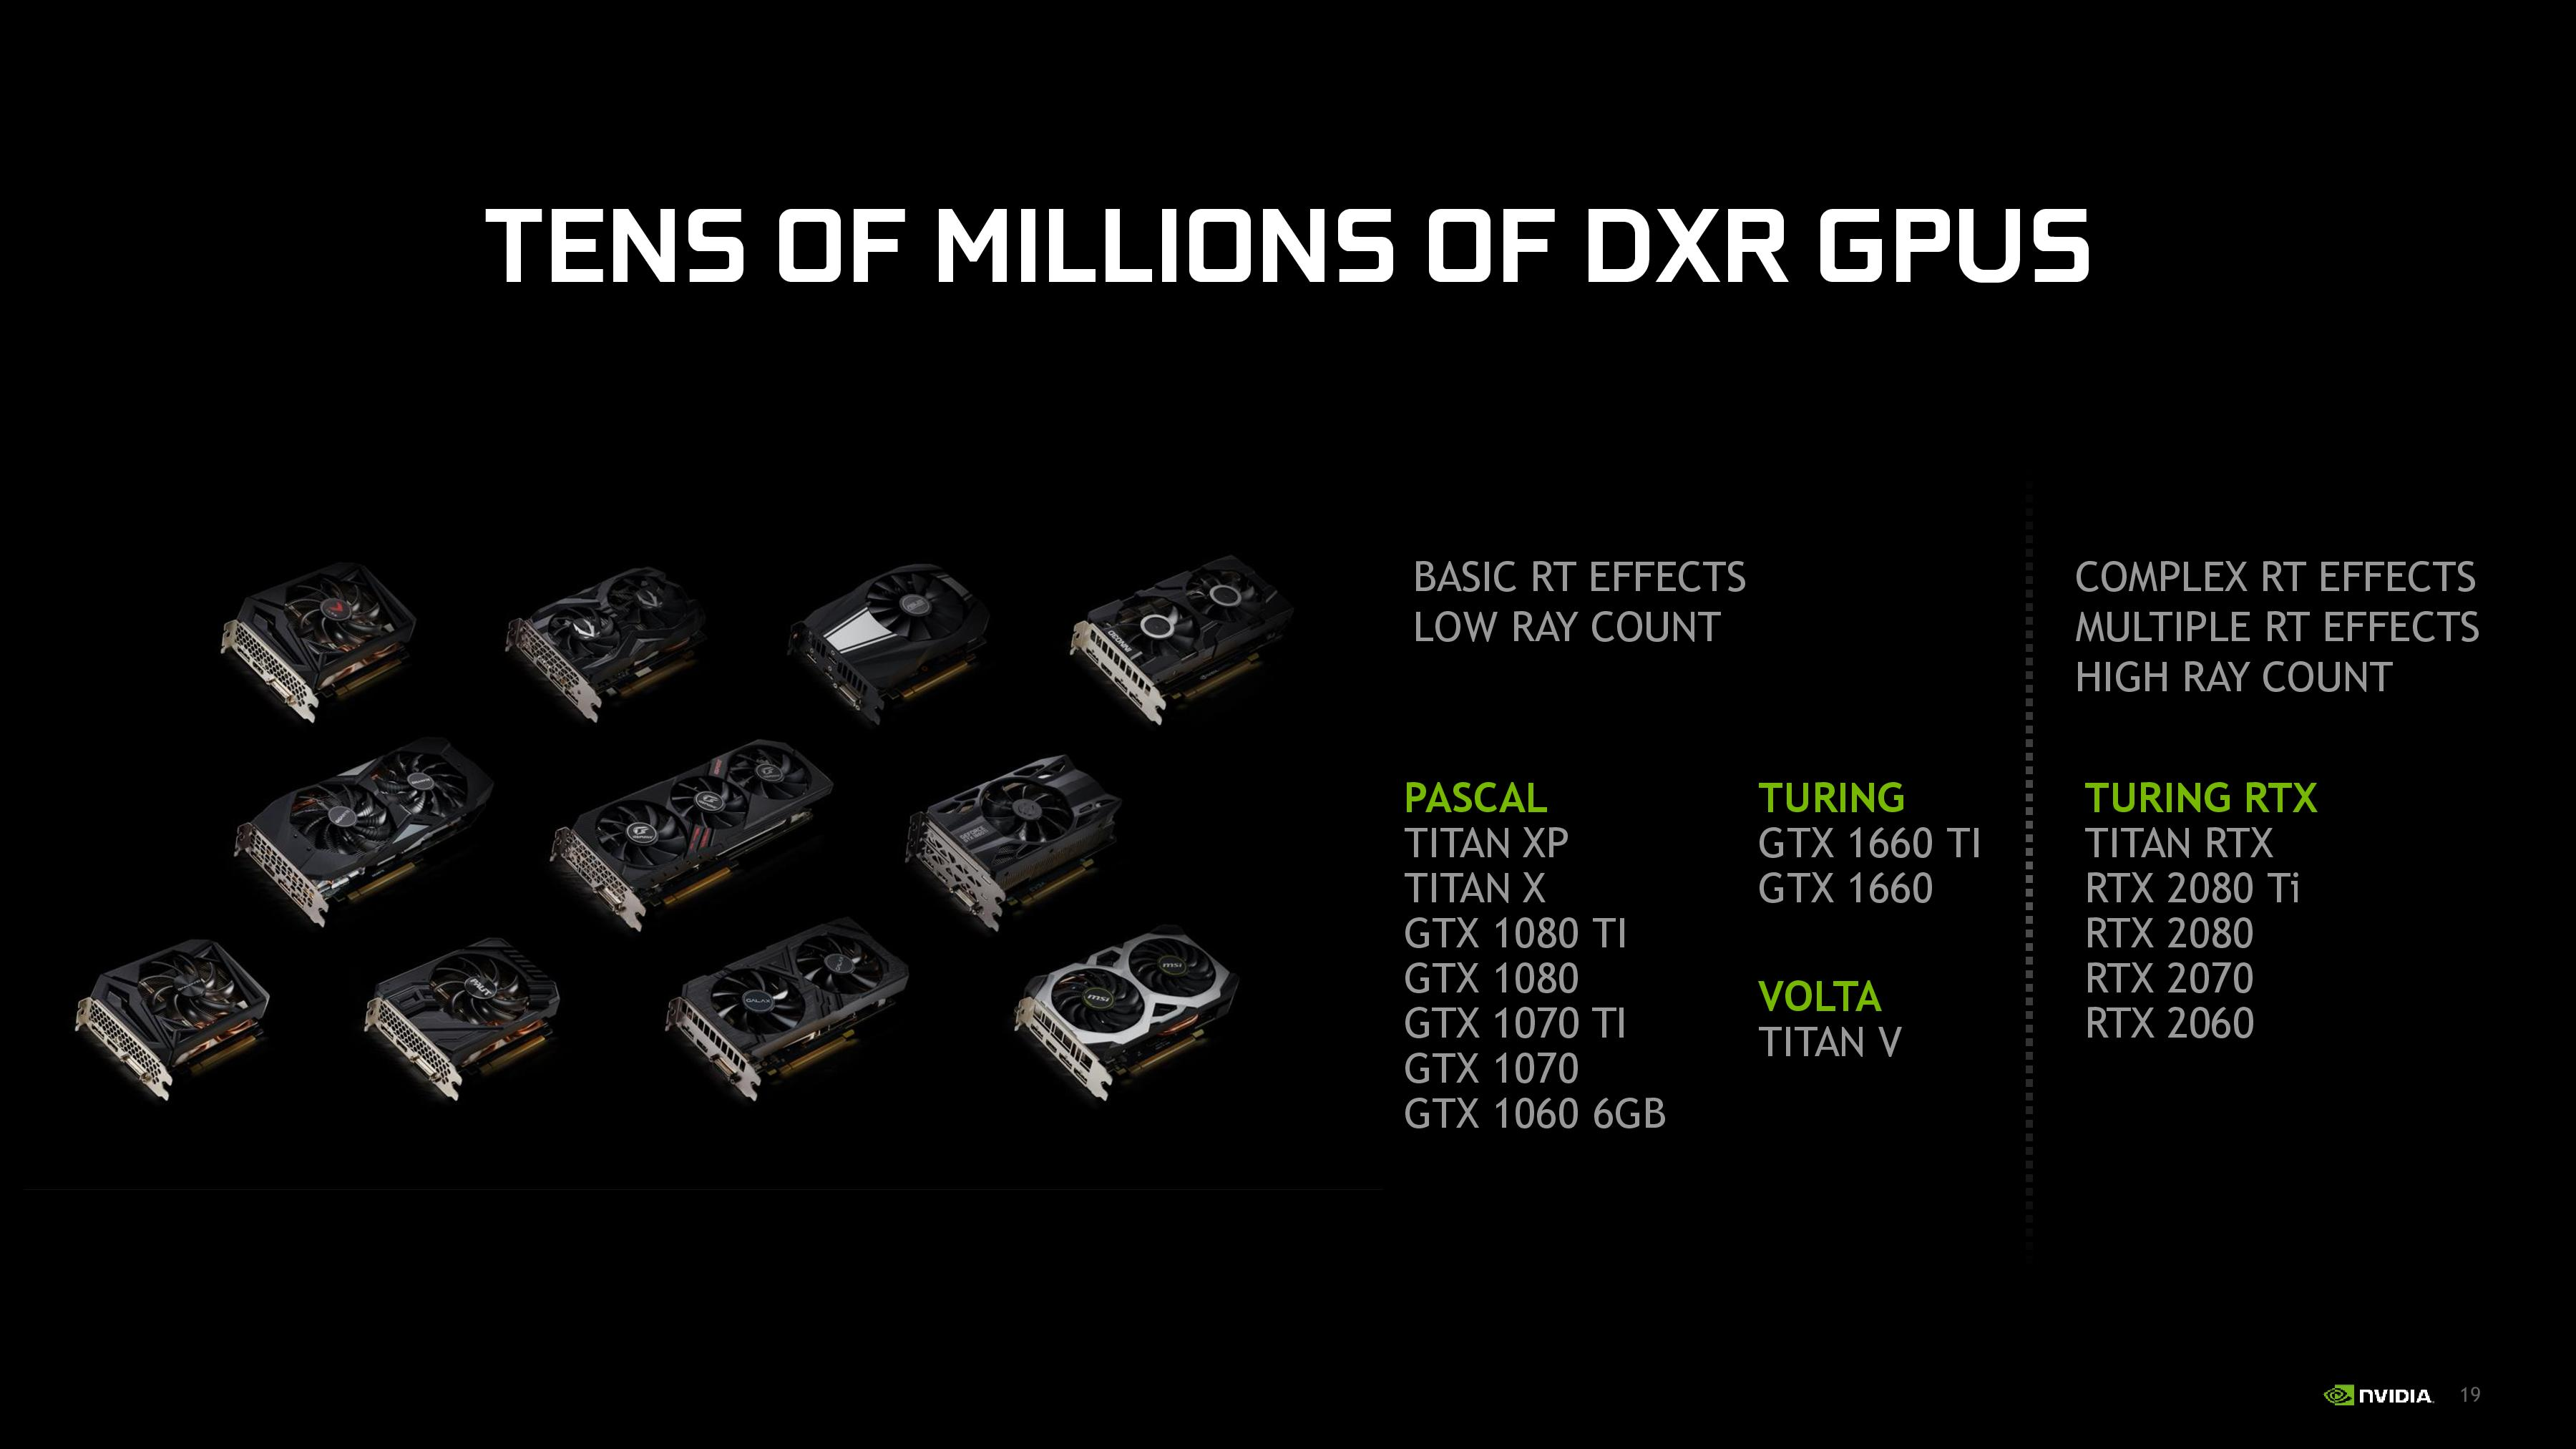 NVIDIA Brings Real-Time Raytracing To Older GeForce GTX GPUs to